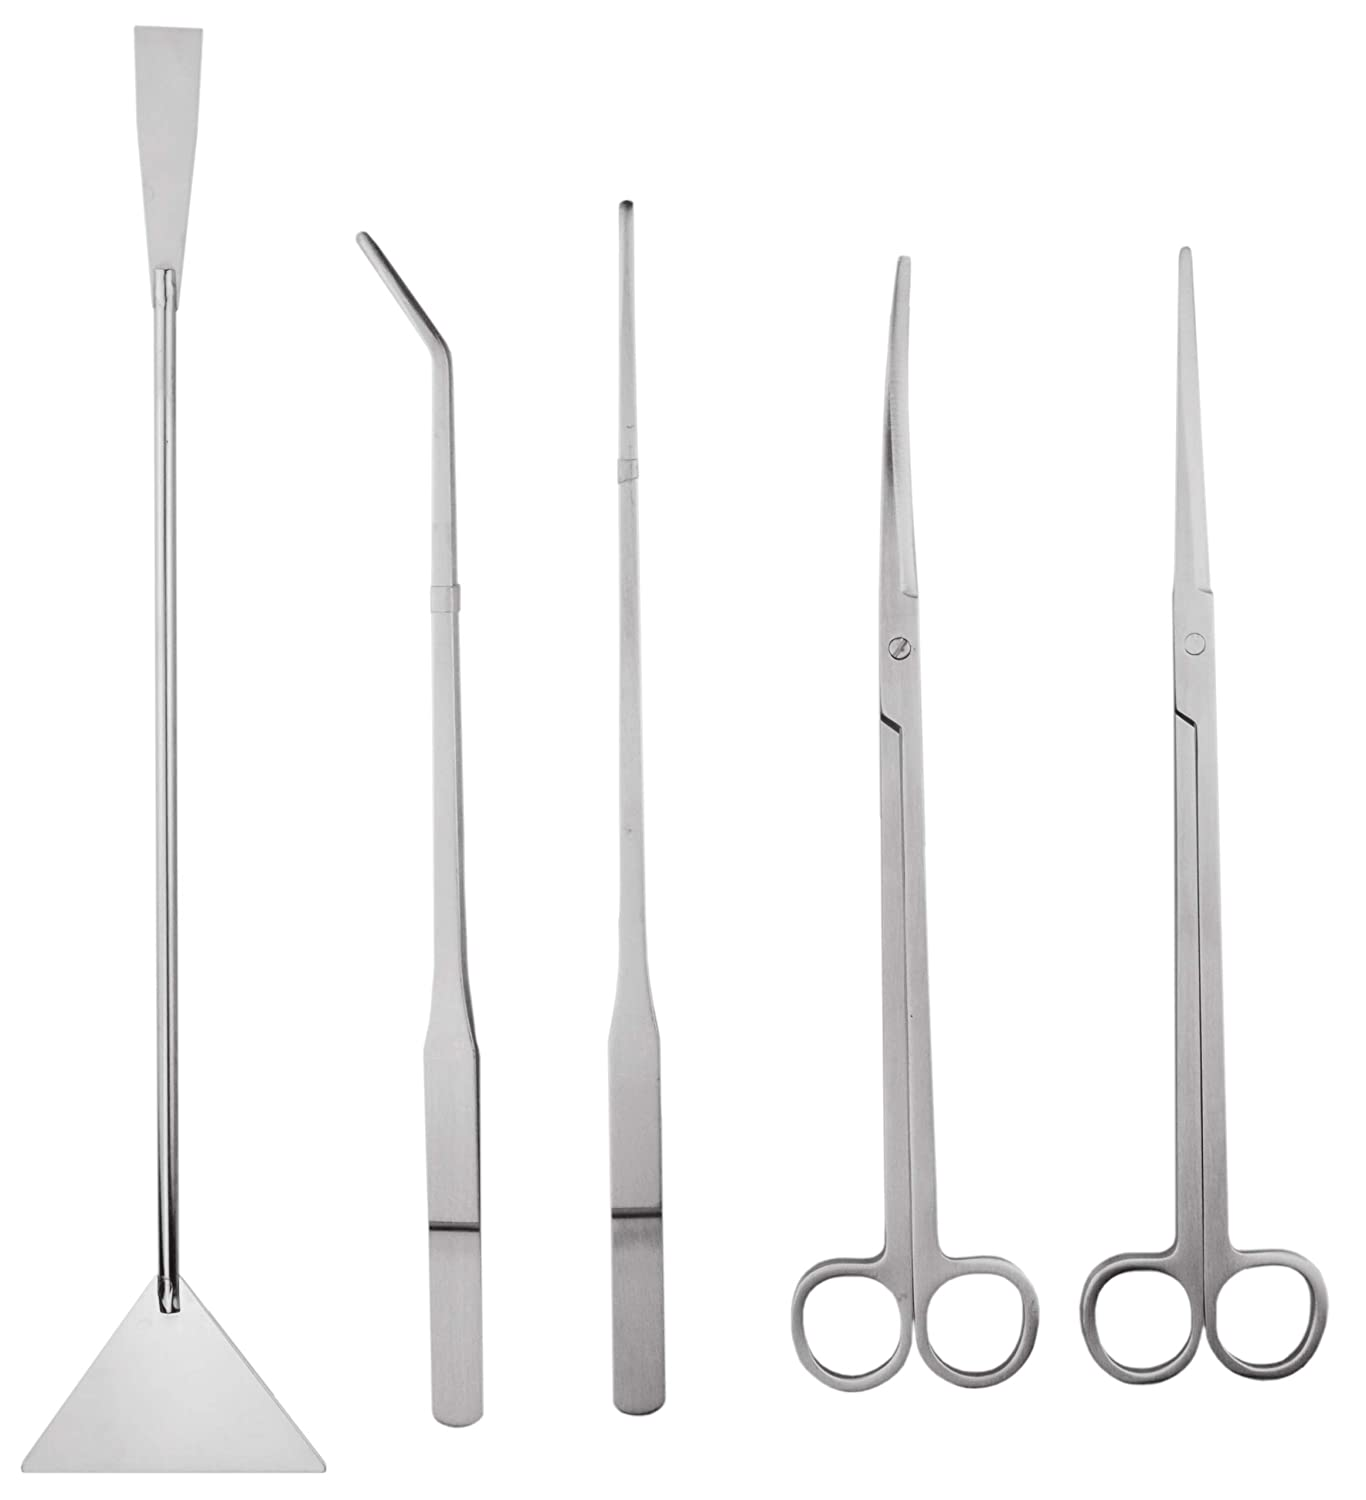 SAMYO Stainless Steel Aquarium Aquascaping Kit Aquatic Plant Tweezers Scissor Substrate Spatula Tools Sets - 5 Tools